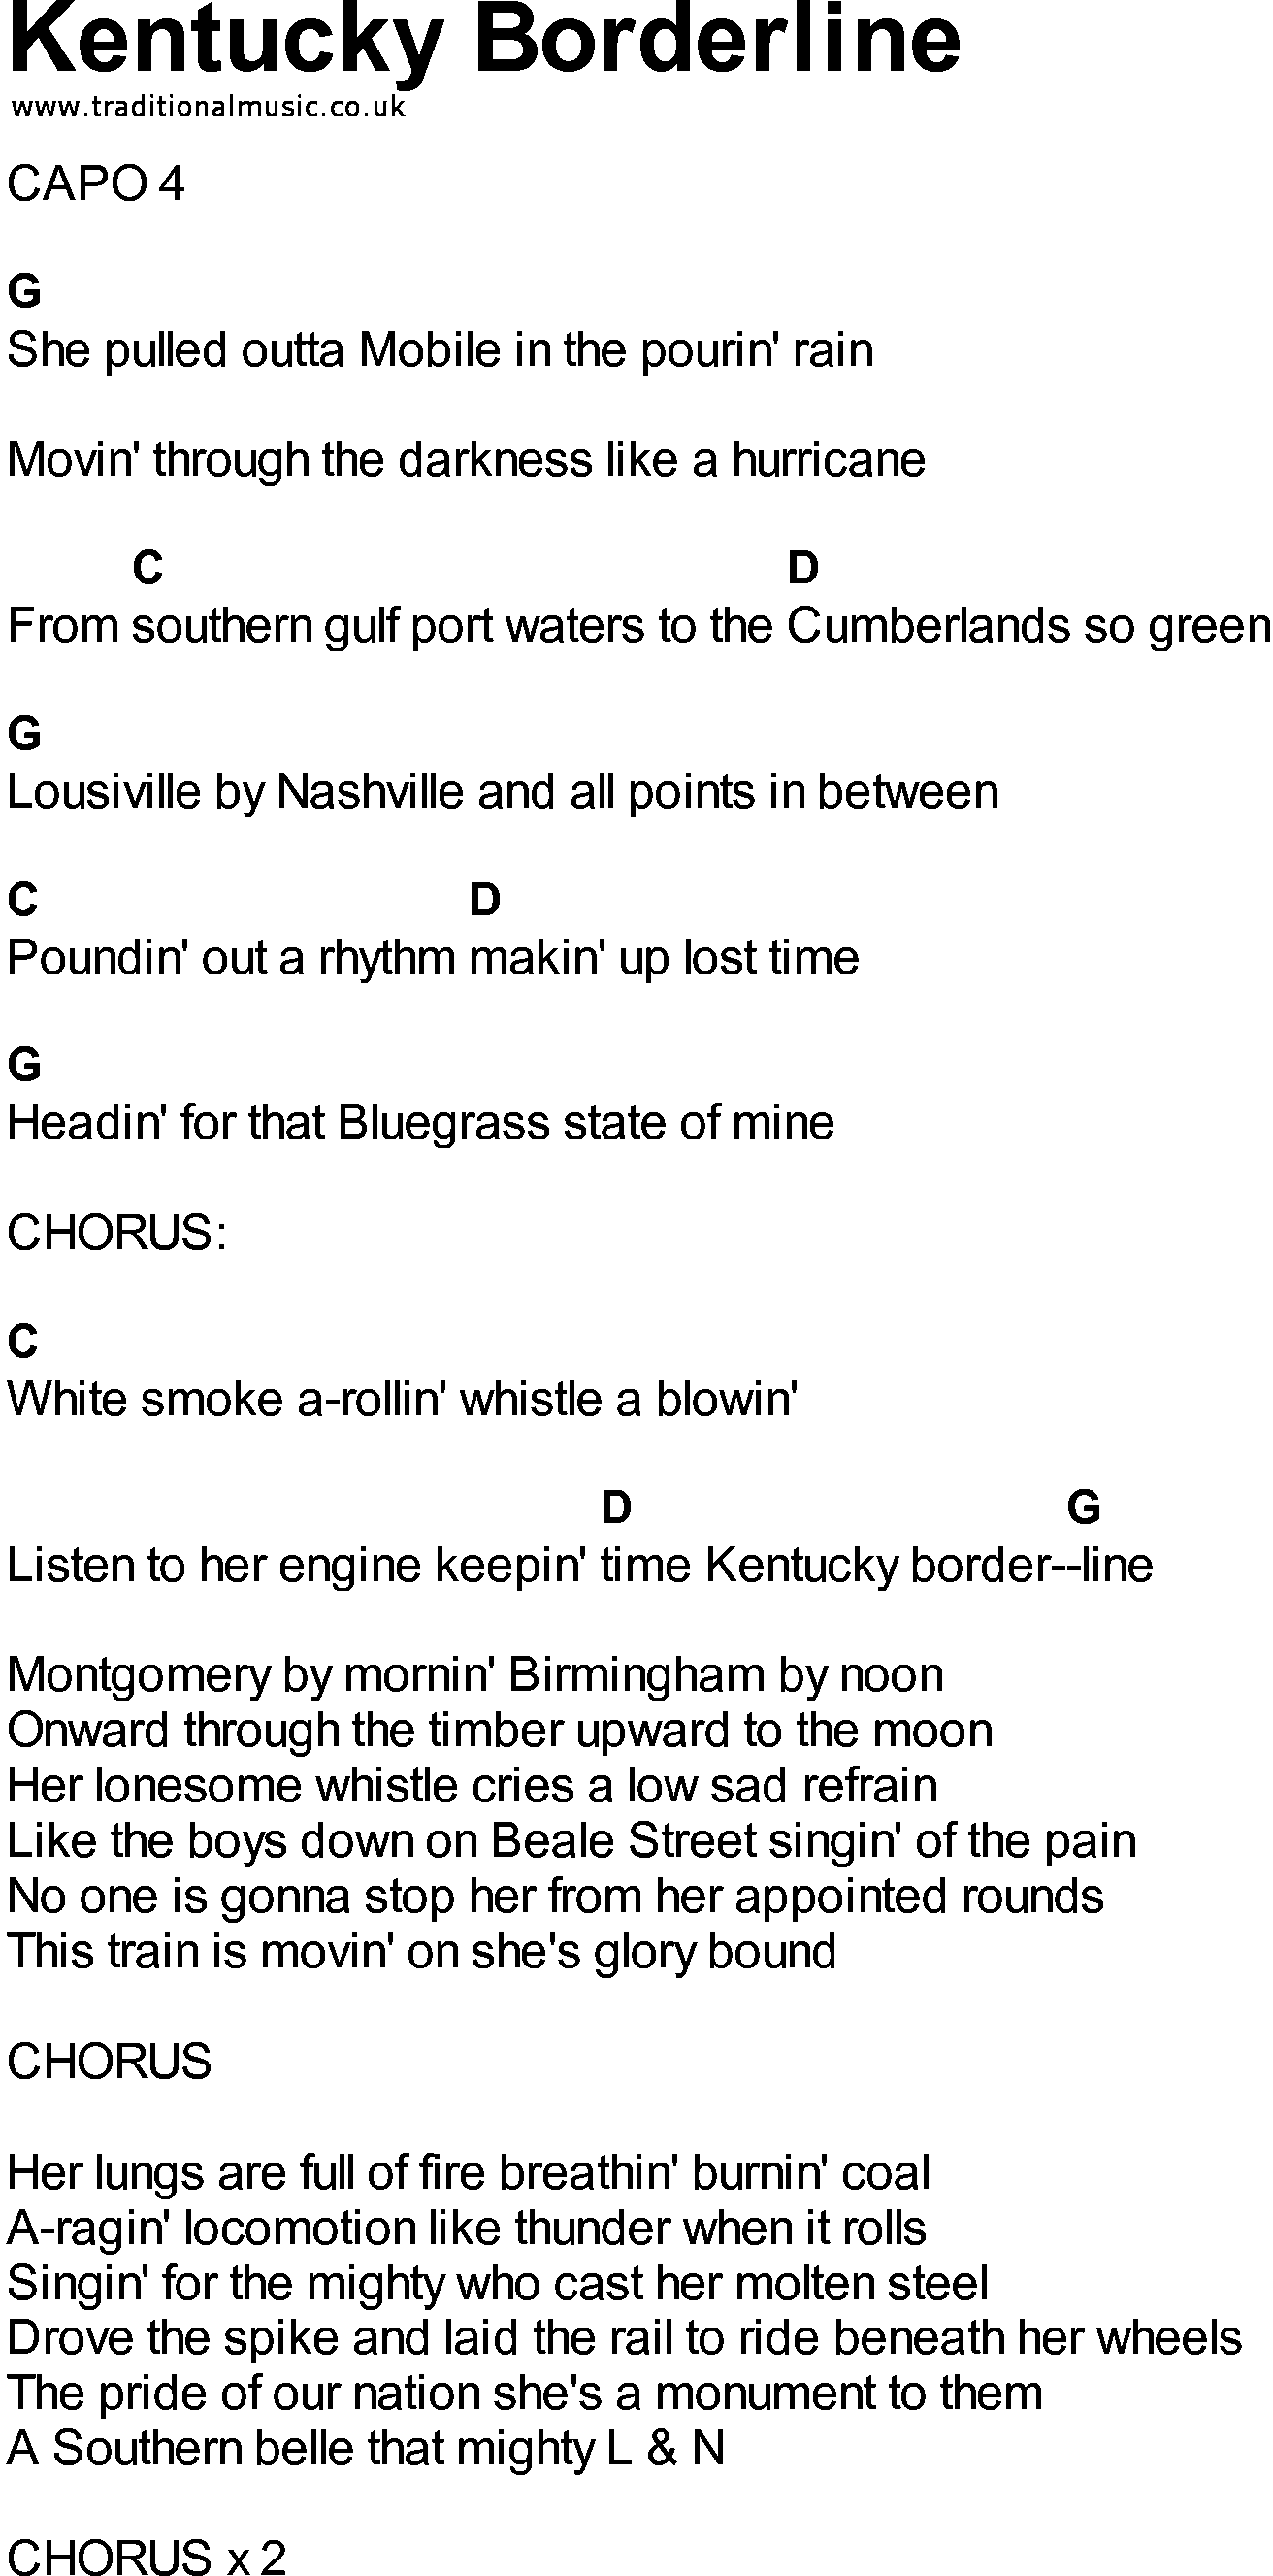 Bluegrass Songs With Chords Kentucky Borderline Music